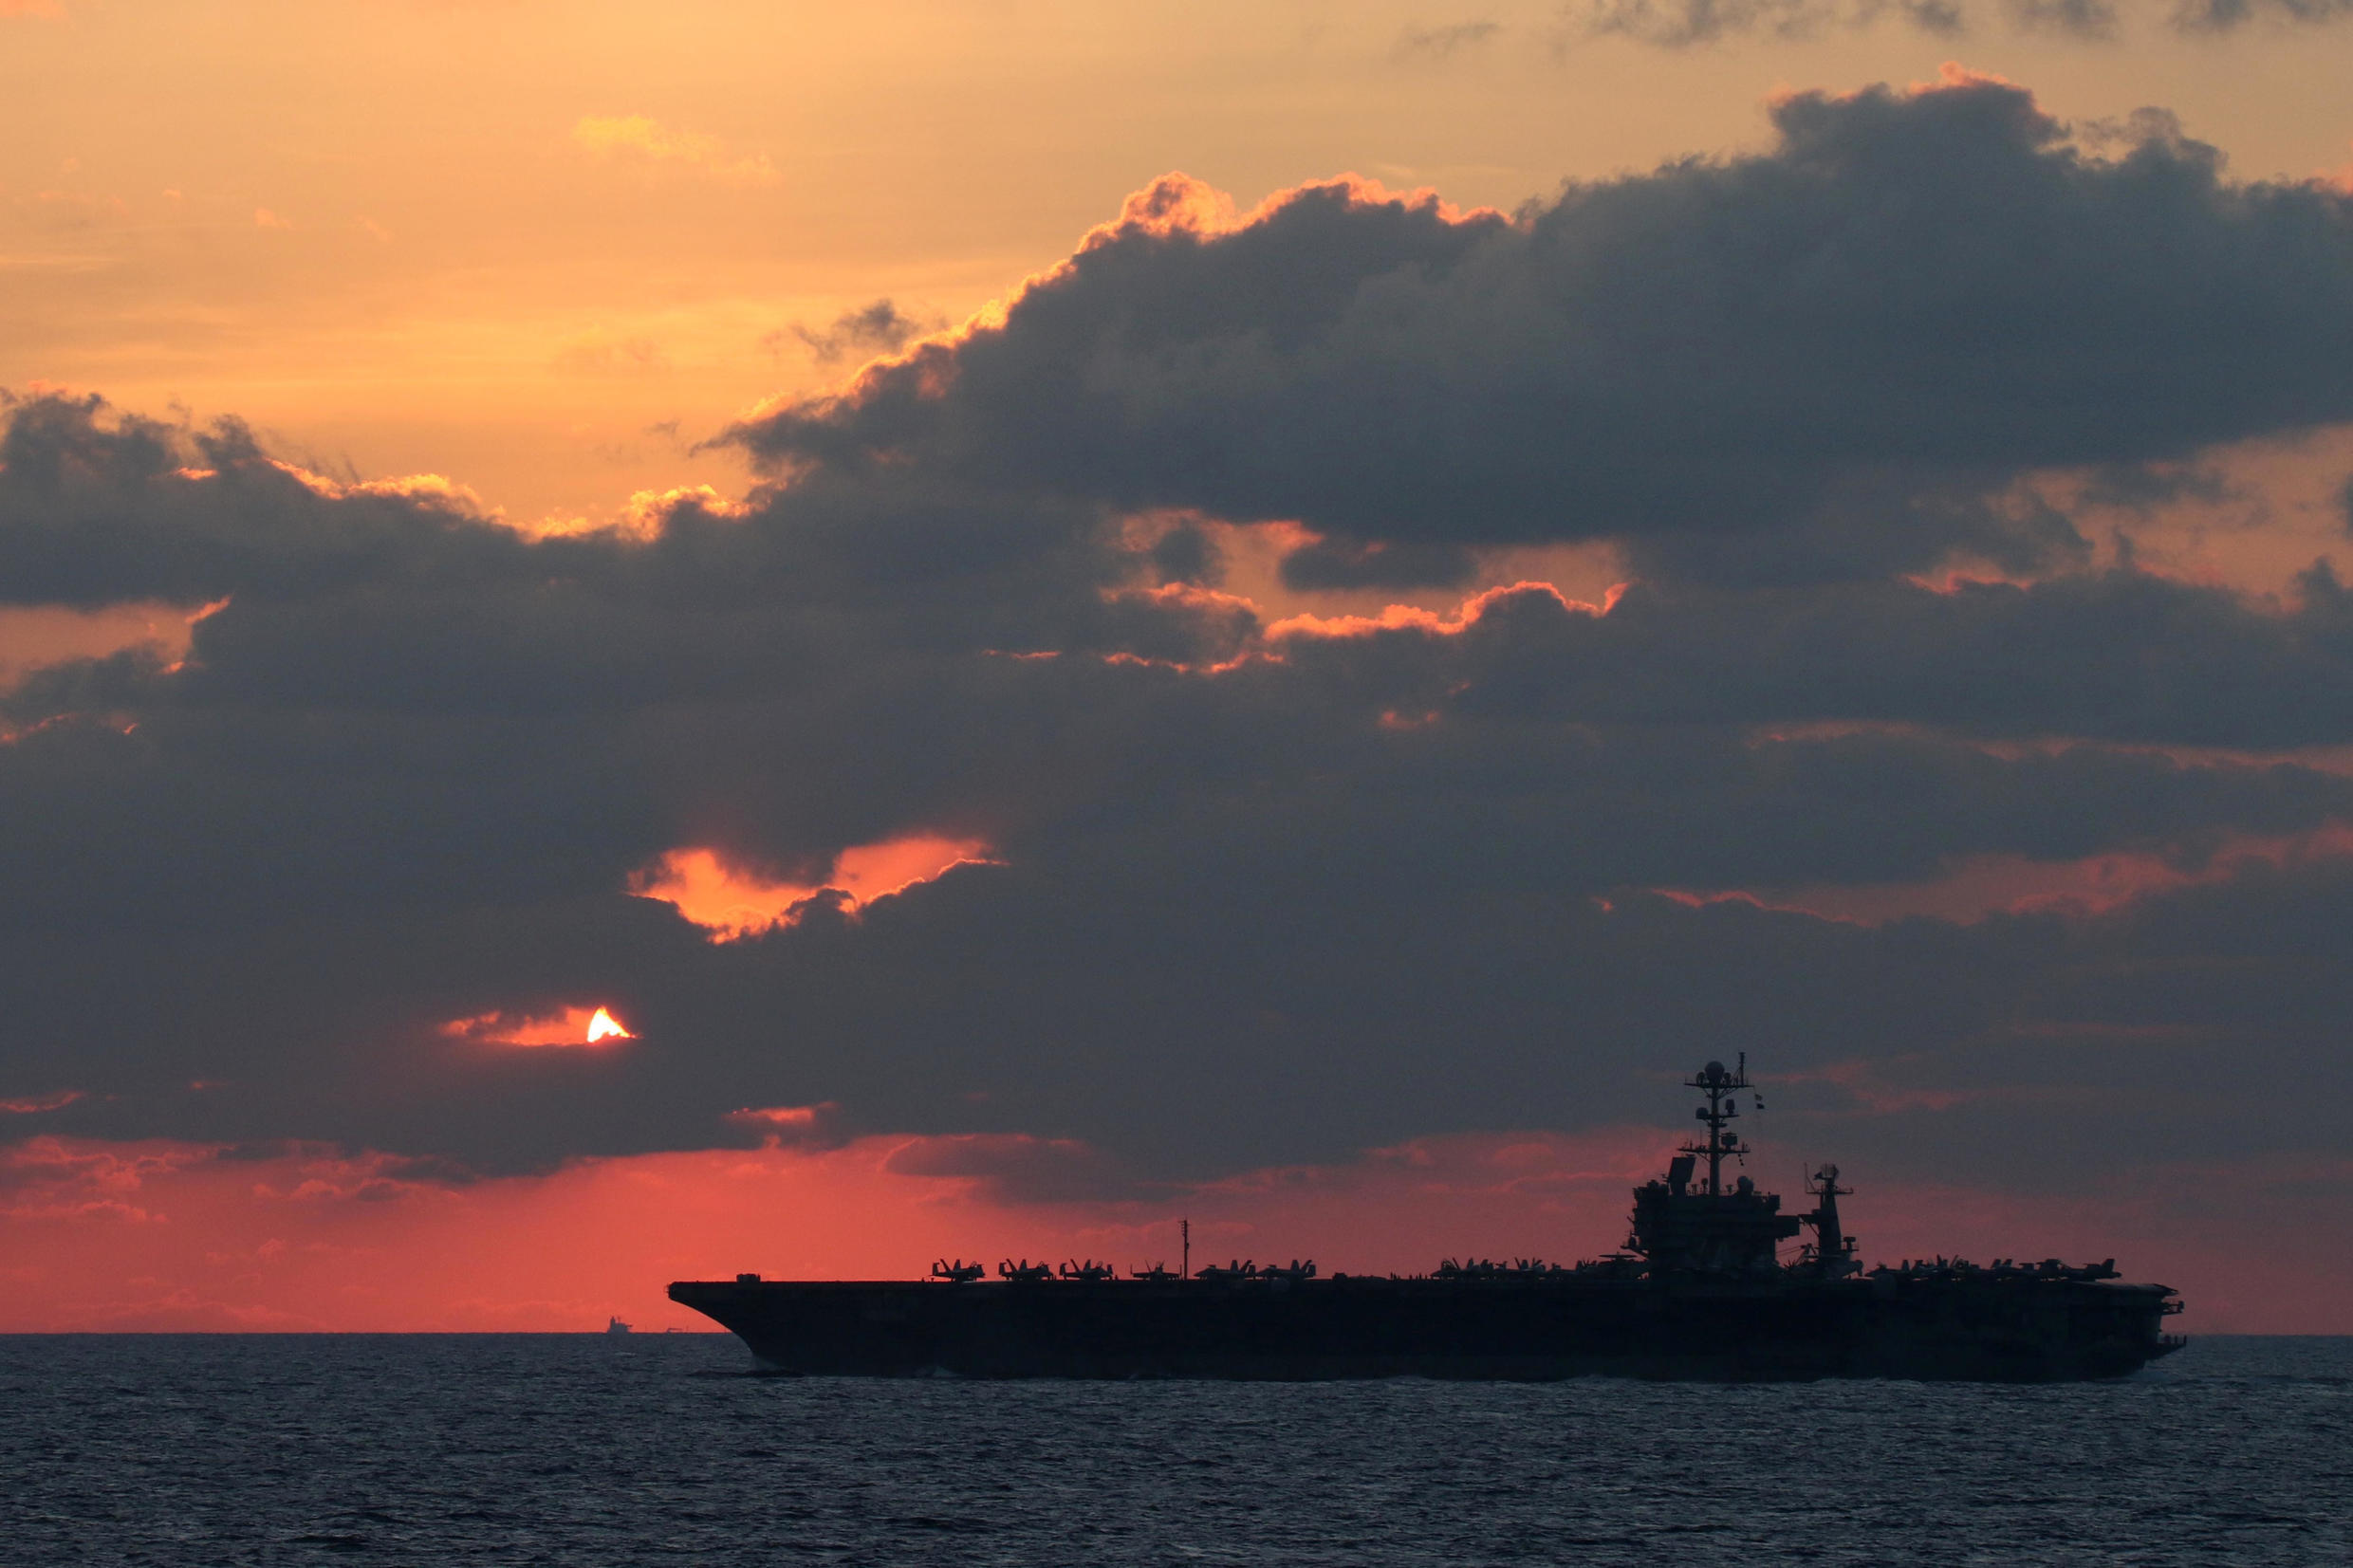 The U.S. Navy aircraft carrier USS John C. Stennis transits the South China Sea at sunset, February 25, 2019. But will US military might stand in the way if China decides to invade Taiwan?